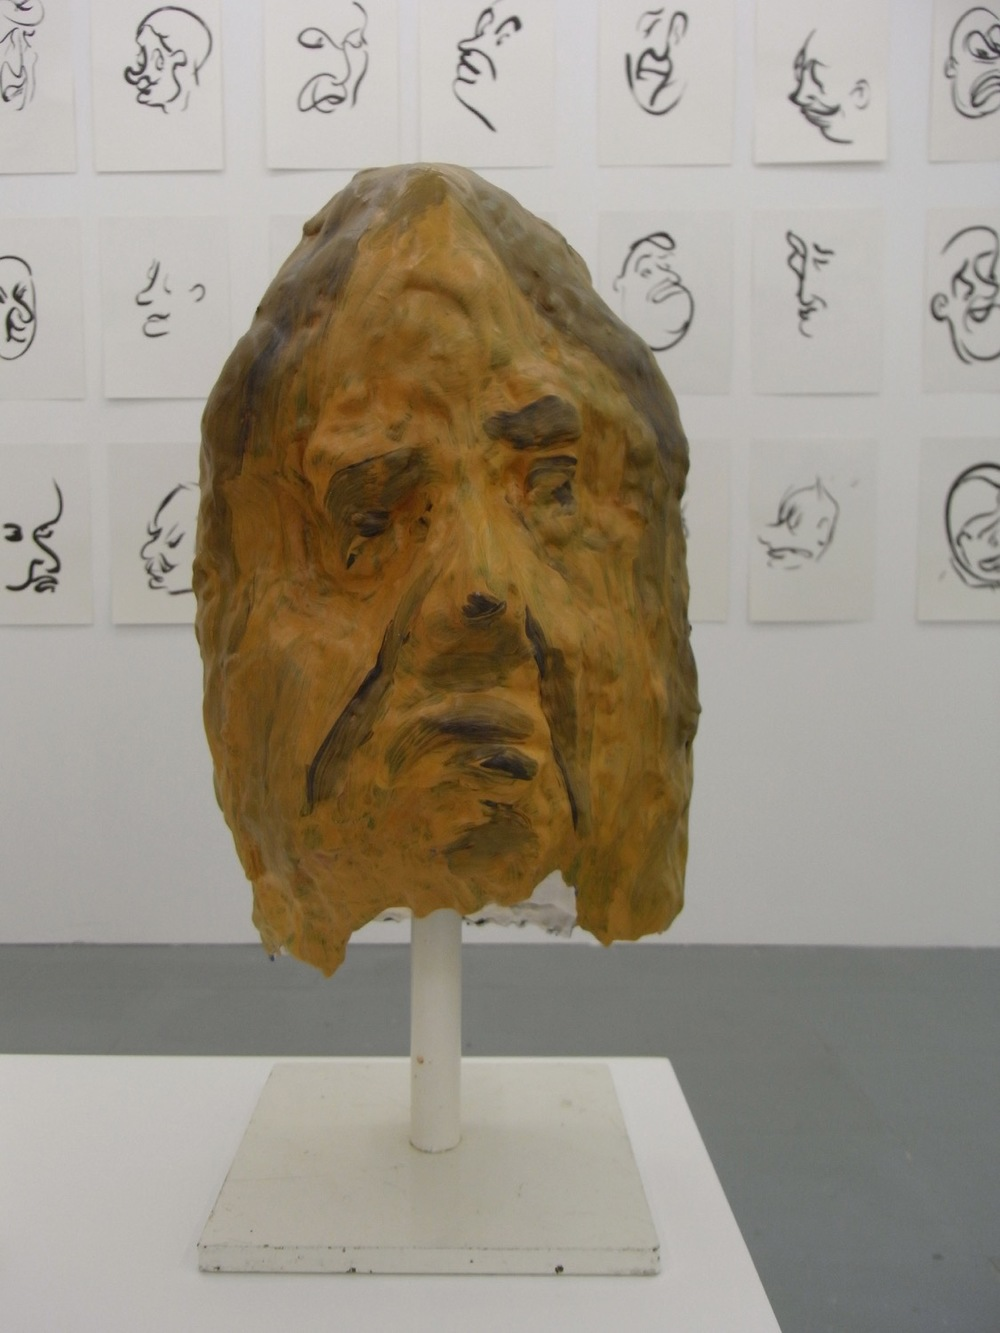 Sam Porritt, Untitled (Head), 2007. Installation view at PEER.